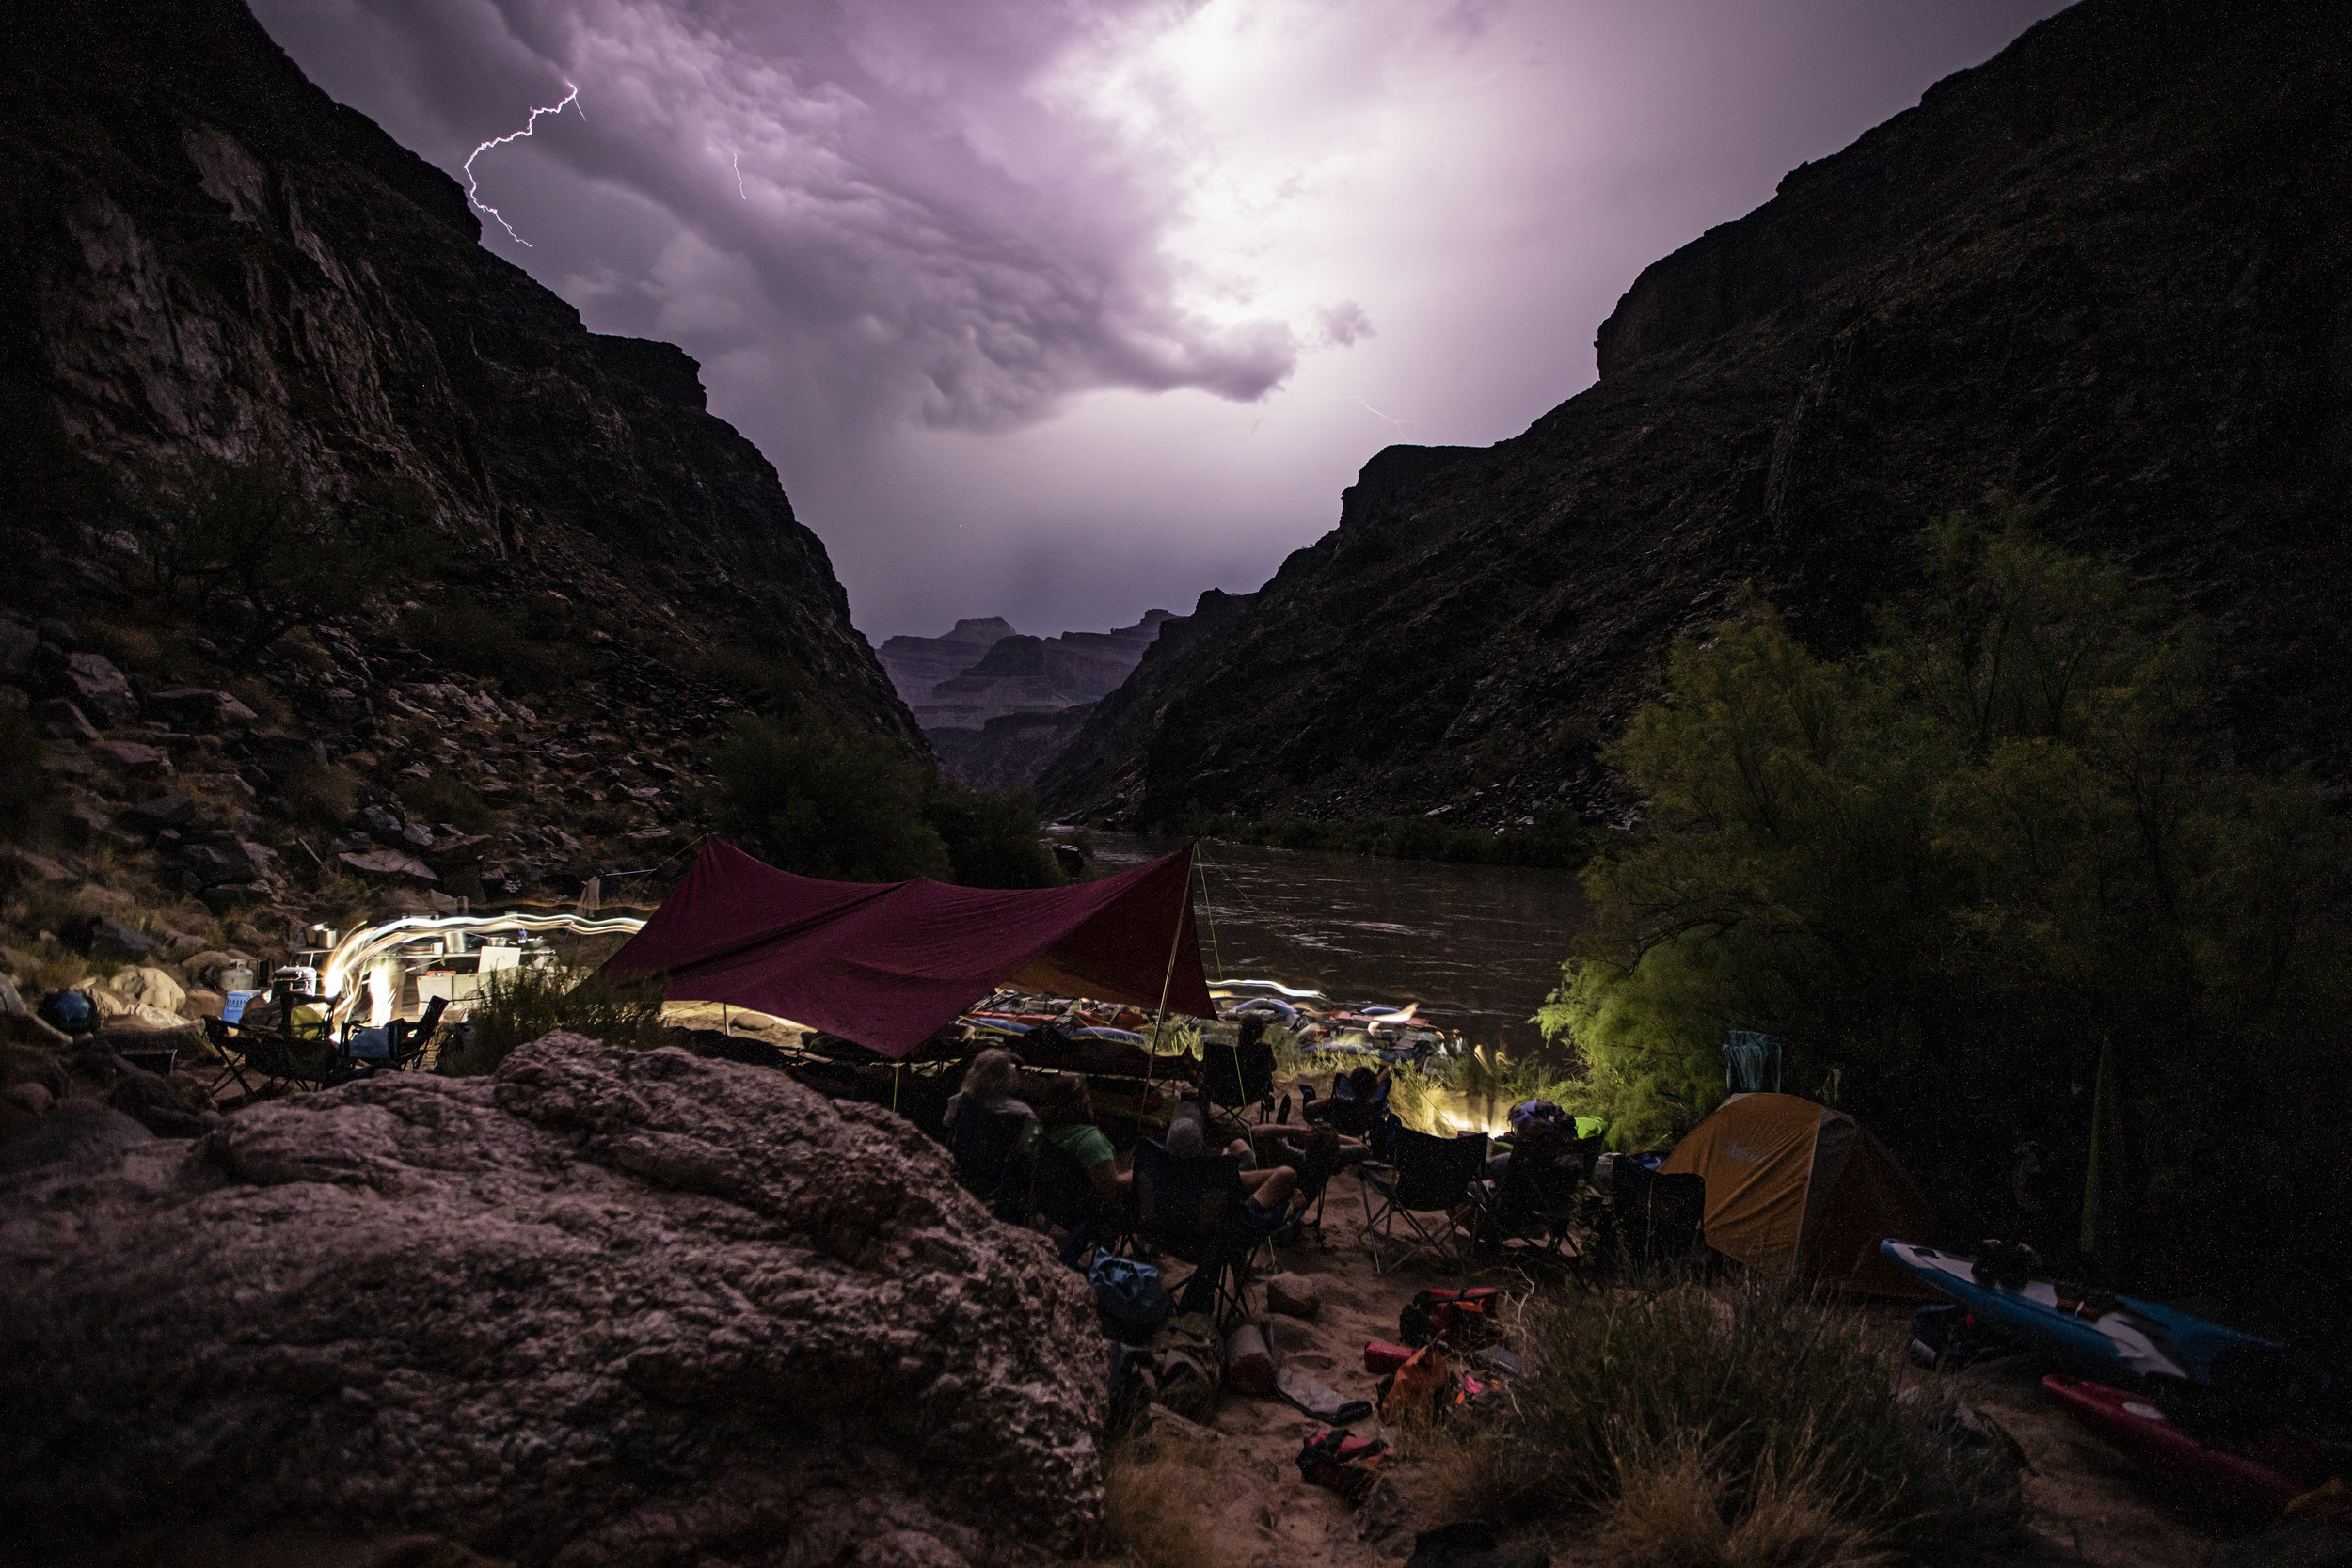 Evening lightning show at camp.